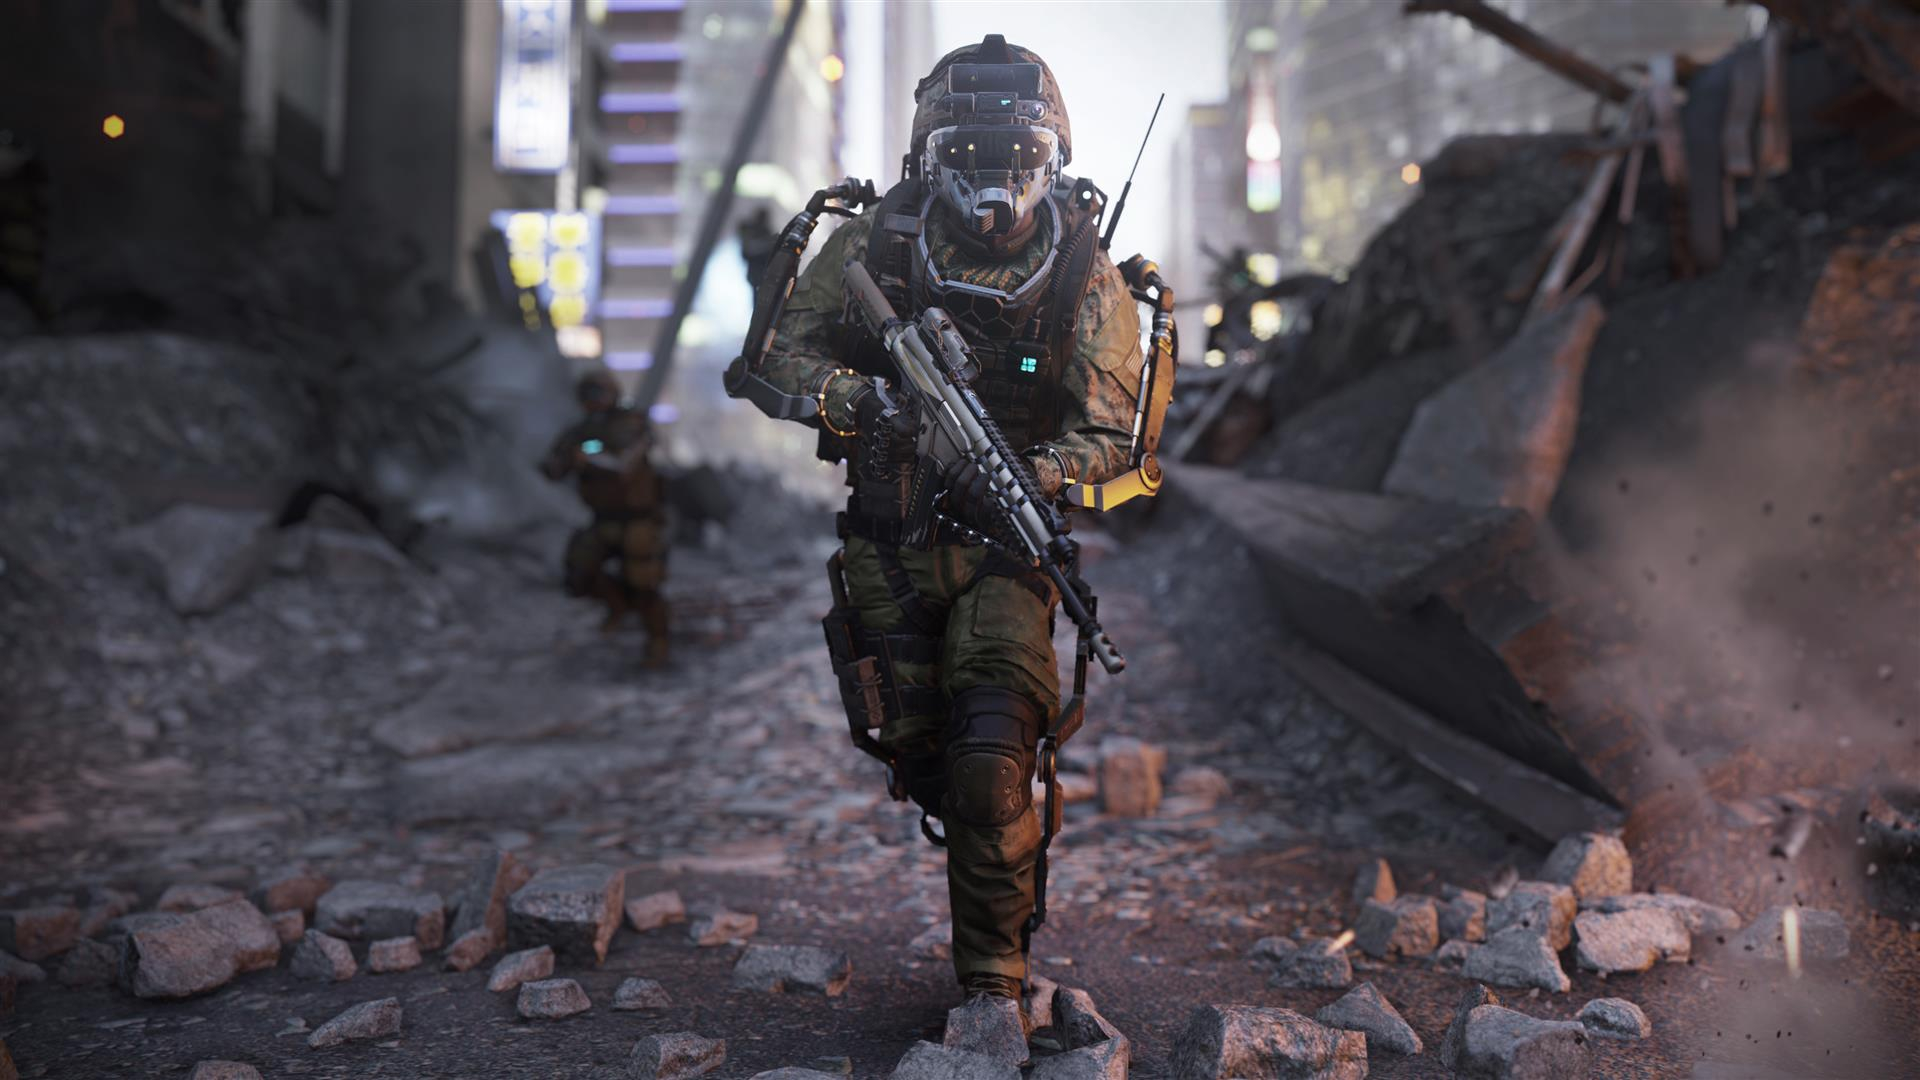 Call Of Duty Advanced Warfare Gameplay Demo Shows Sci Fi Touch Dlc Still Going To Xbox Live First Neoseeker